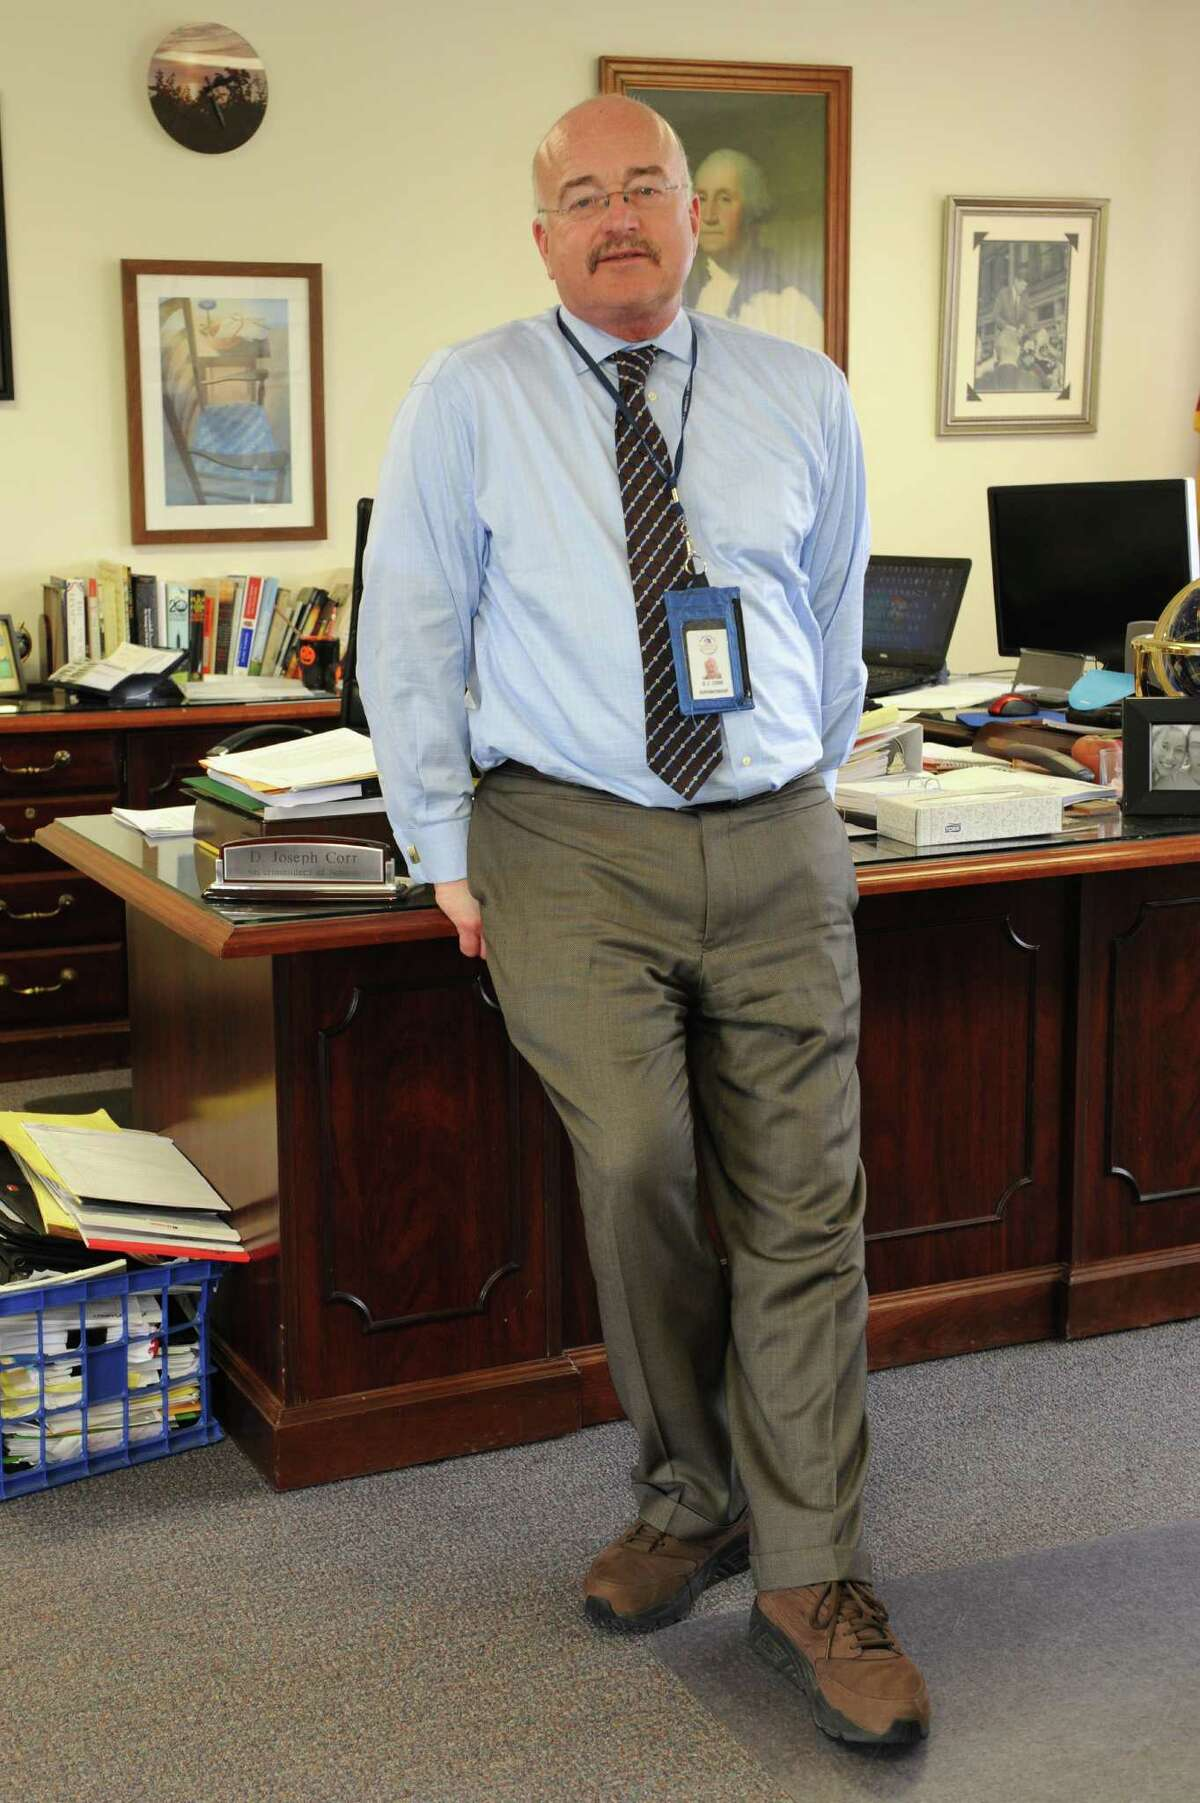 North Colonie School District Superintendent Joseph Corr stands in his office on Wednesday, March 16, 2016 in Colonie, N.Y. (Lori Van Buren / Times Union)